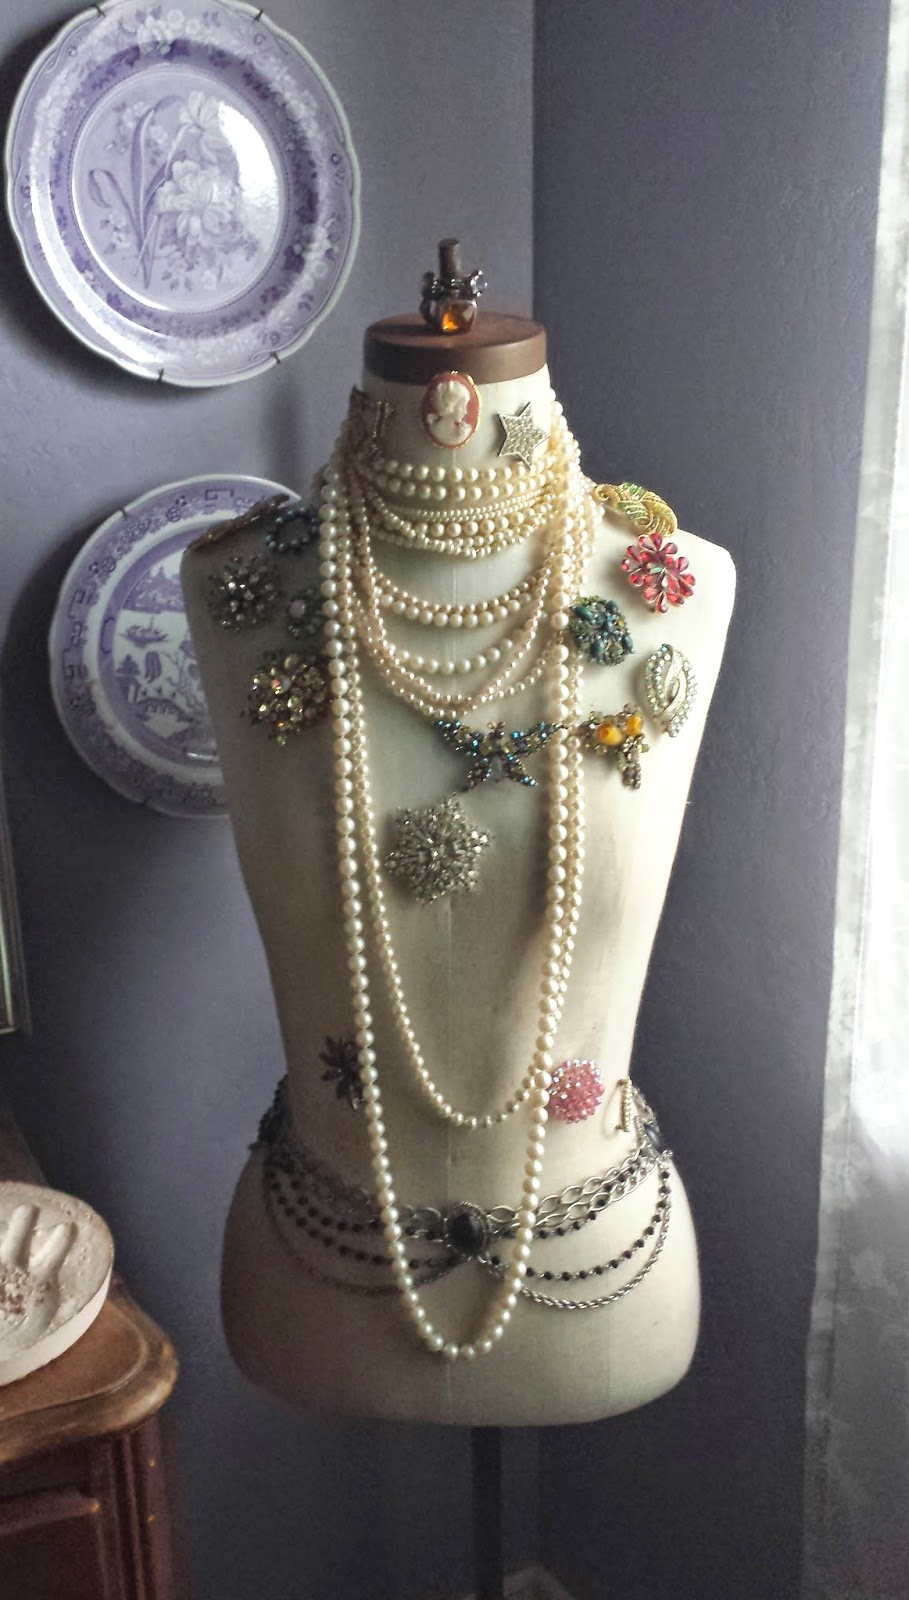 Ciao newport beach vintage inspired jewelry display for Jewelry displays